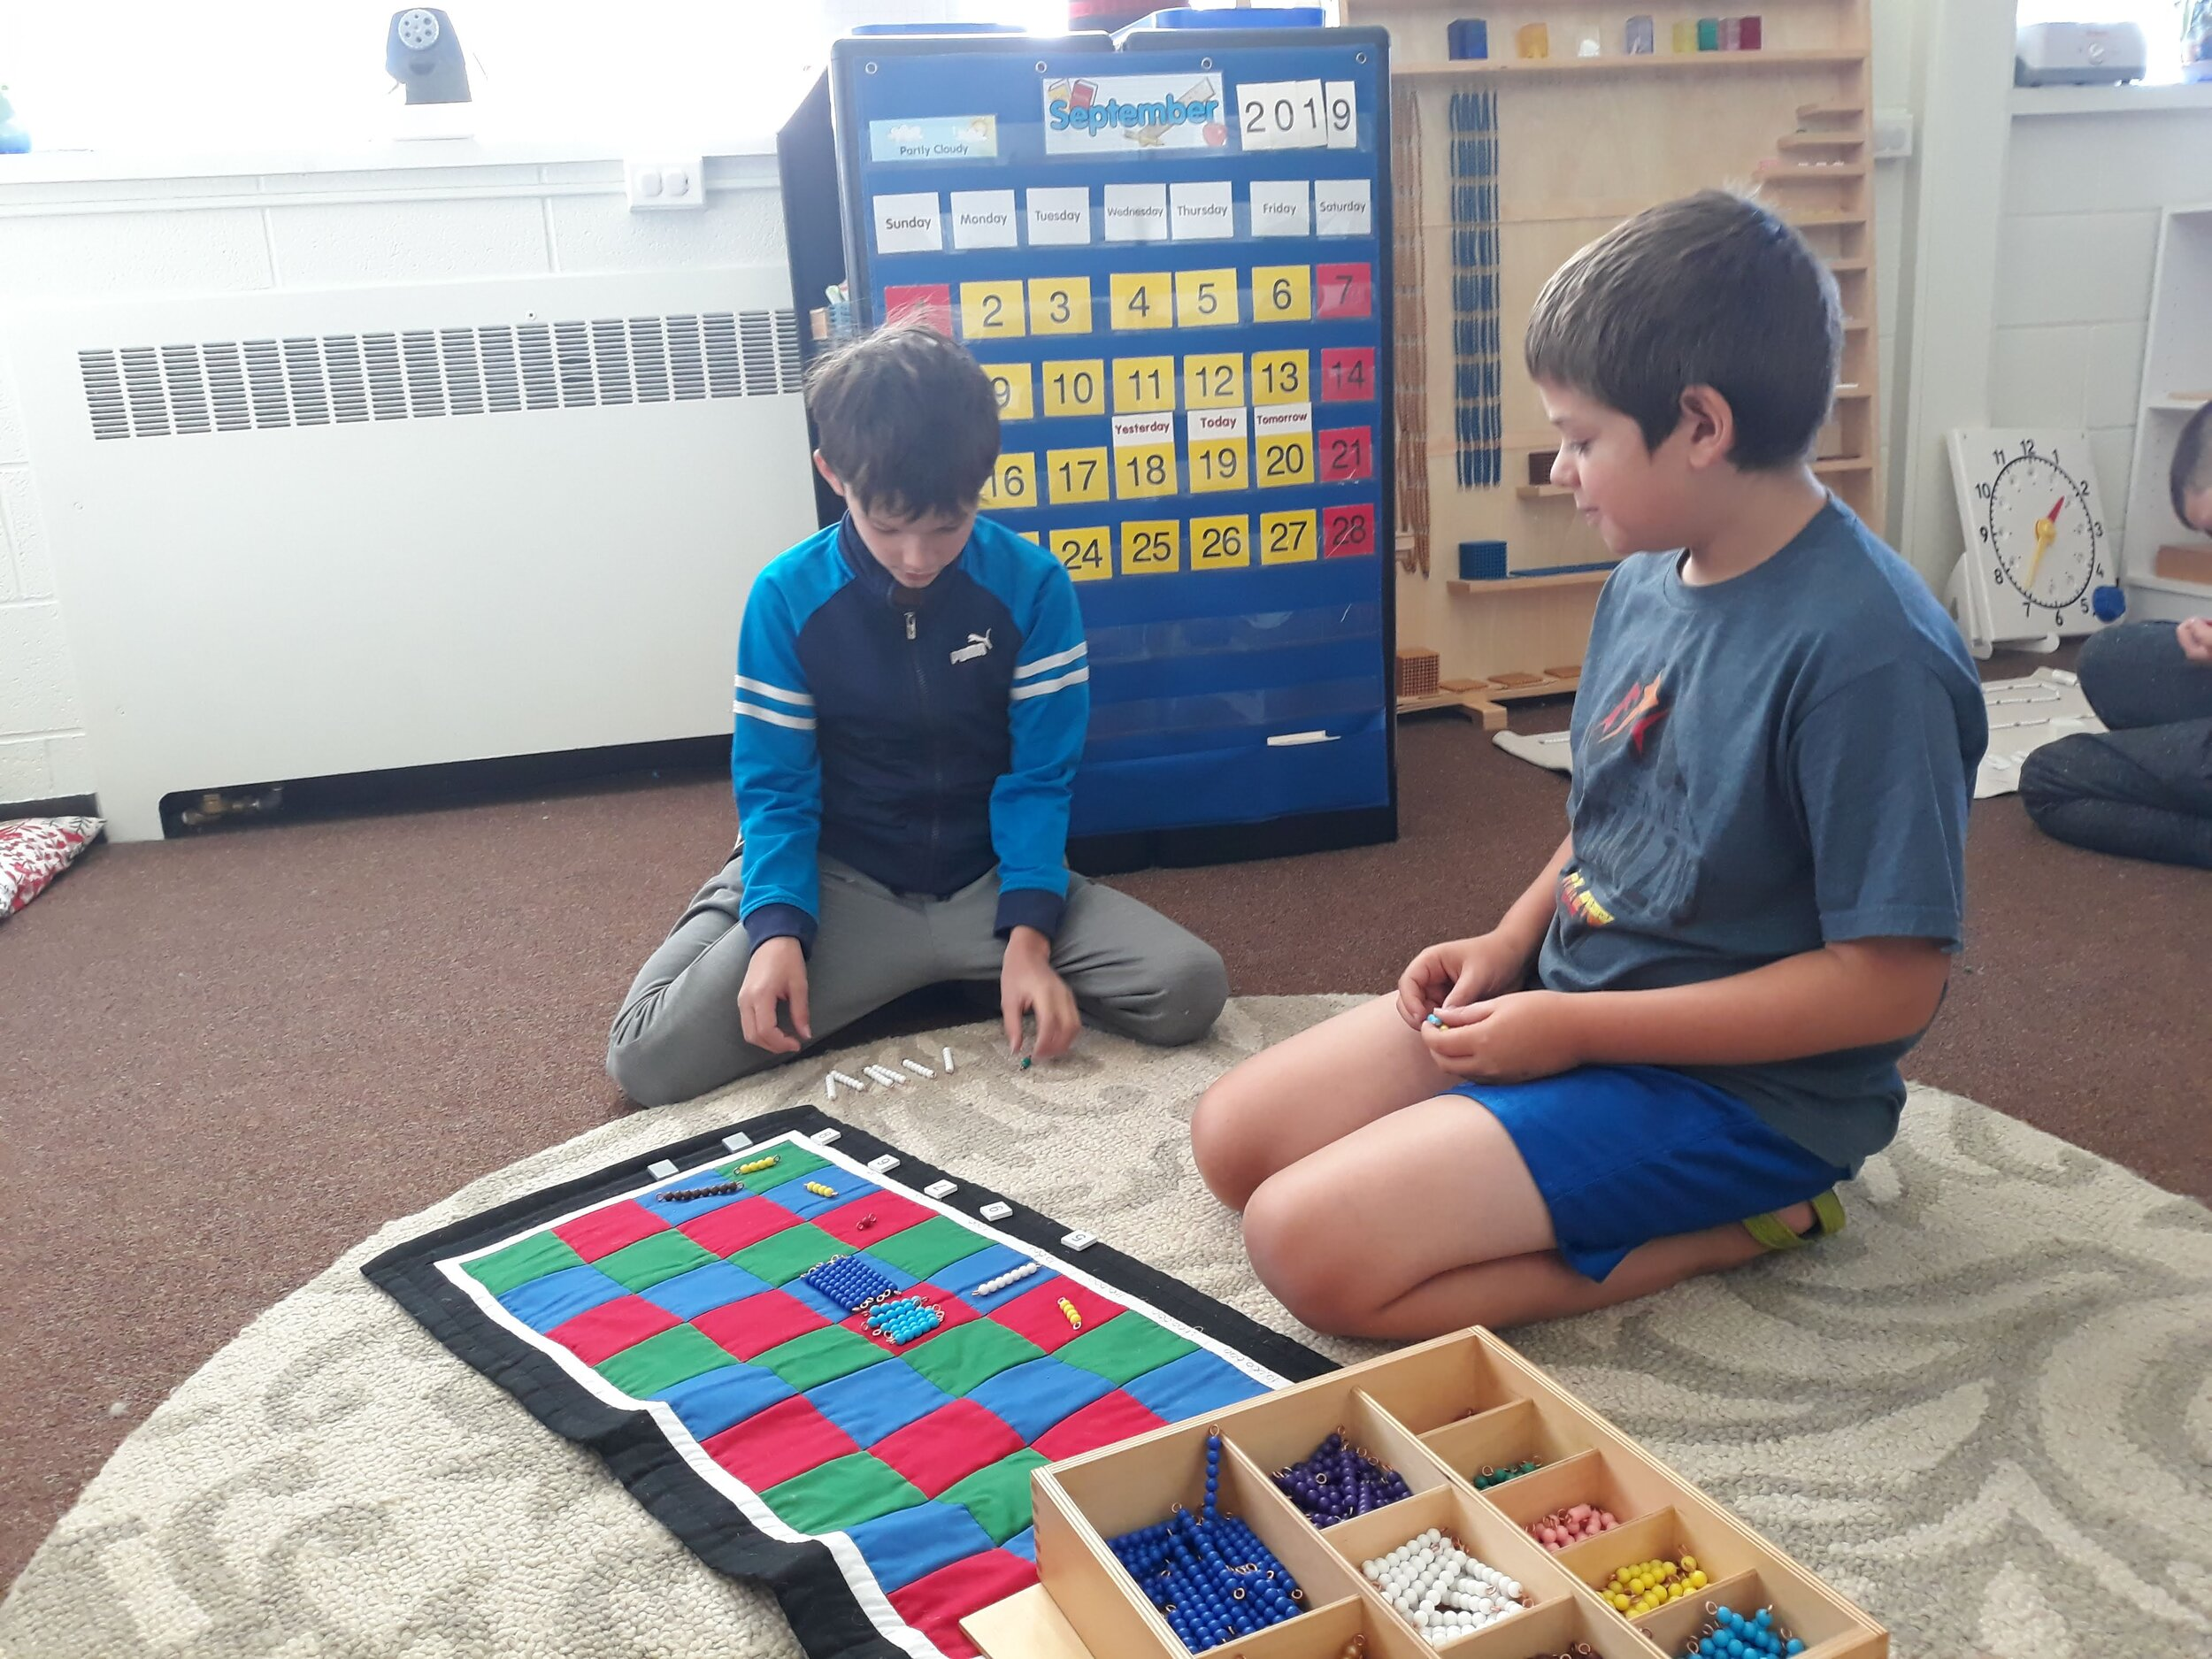 Students explaining math concepts to one another using Montessori materials